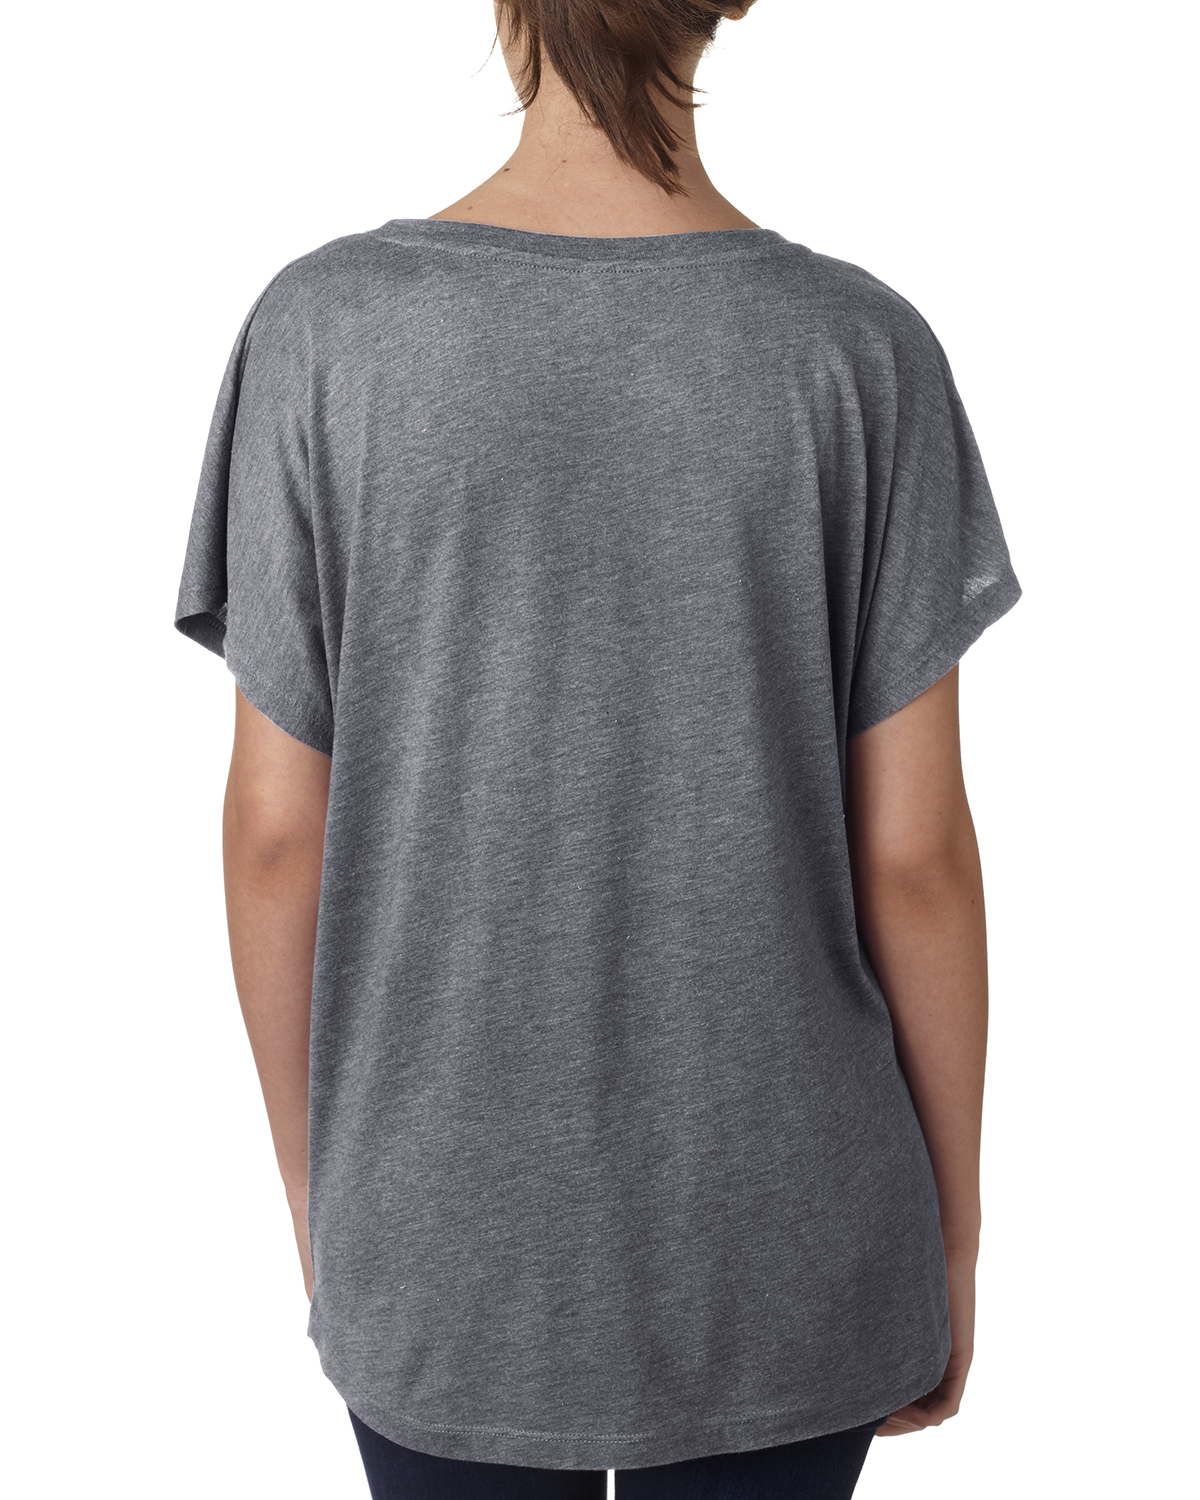 NEW-Next-Level-Junior-Fit-Triblend-Dolman-Sleeve-Relexed-Fit-T-Shirt-B-6760 thumbnail 15